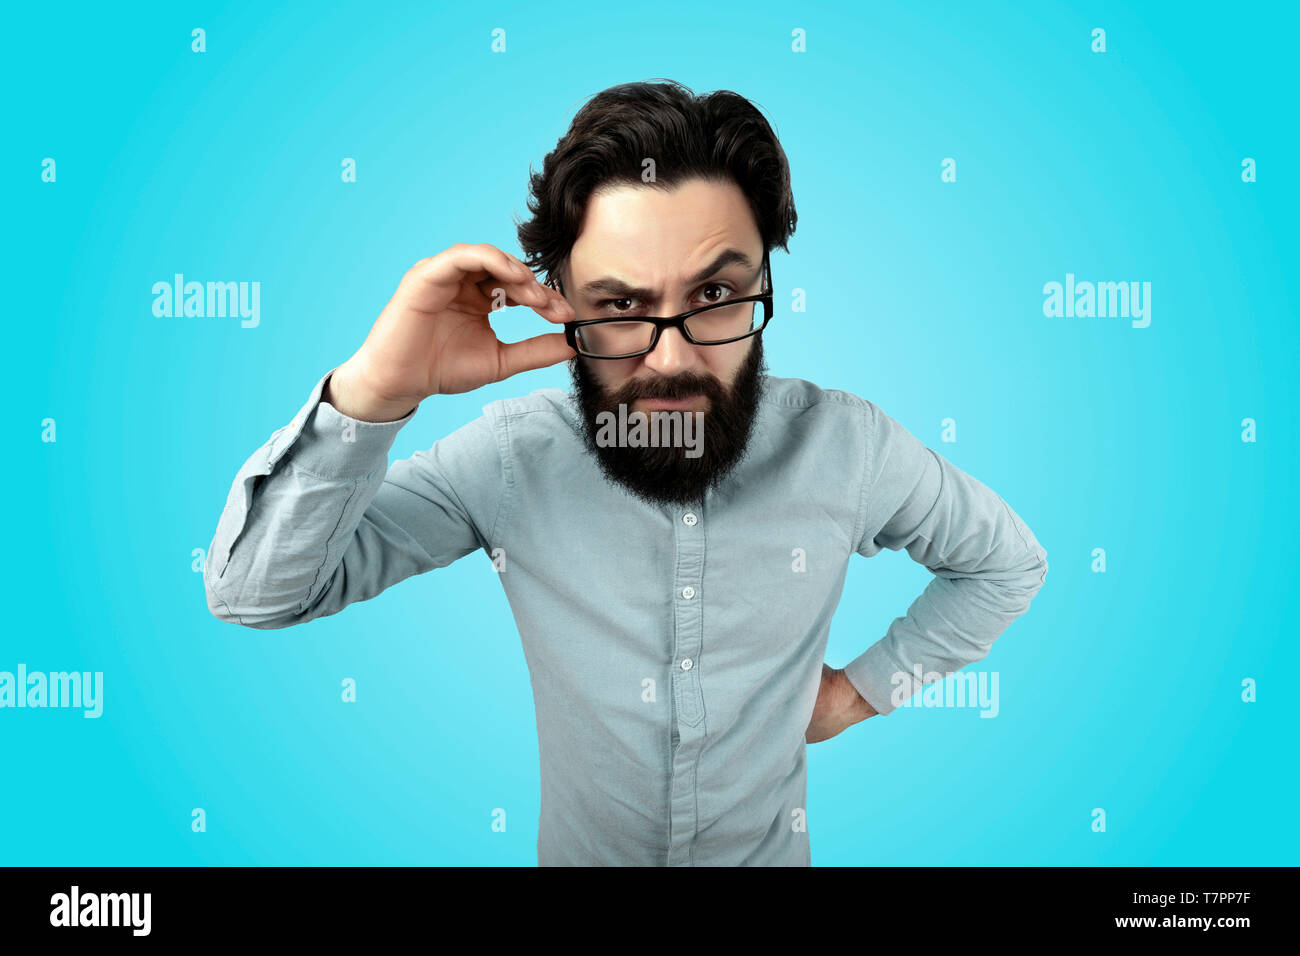 Headshot of strict annoyed aggressive man with beard, mustache, looks seriously through spectacles, frowns face in dissatisfaction, expresses negative - Stock Image